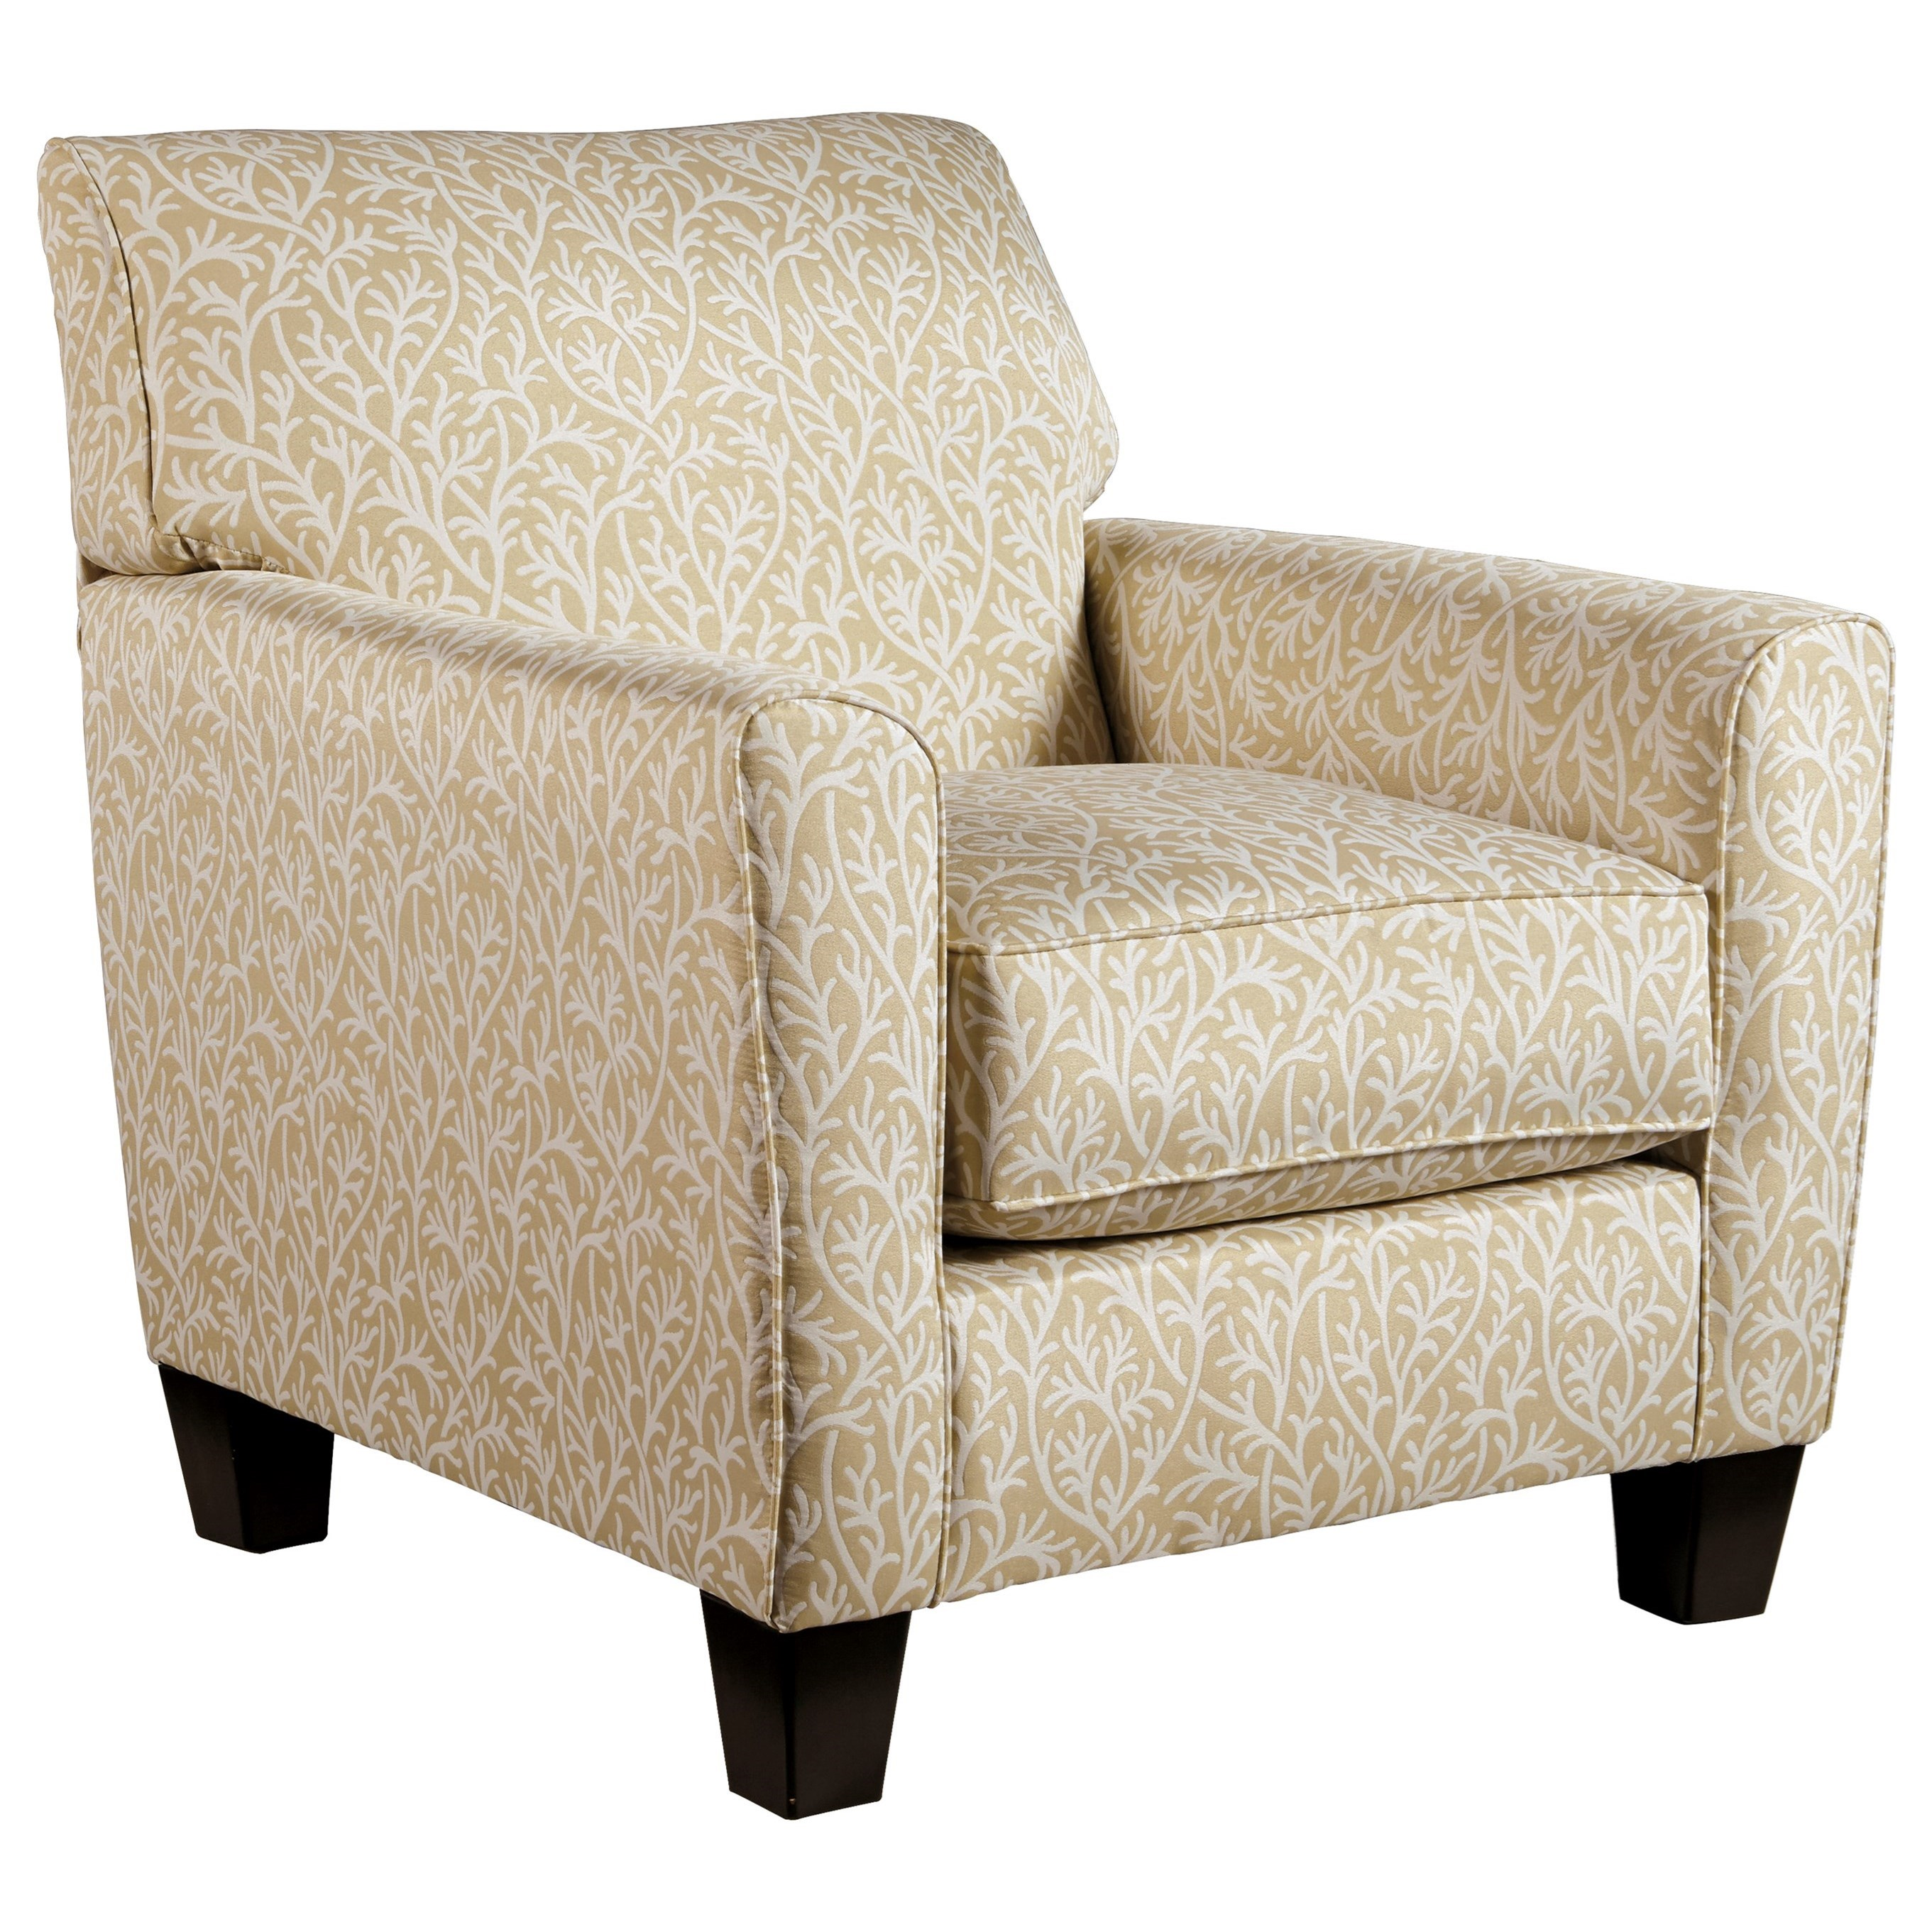 Benchcraft Ayanna Nuvella Accent Chair - Item Number: 9470521